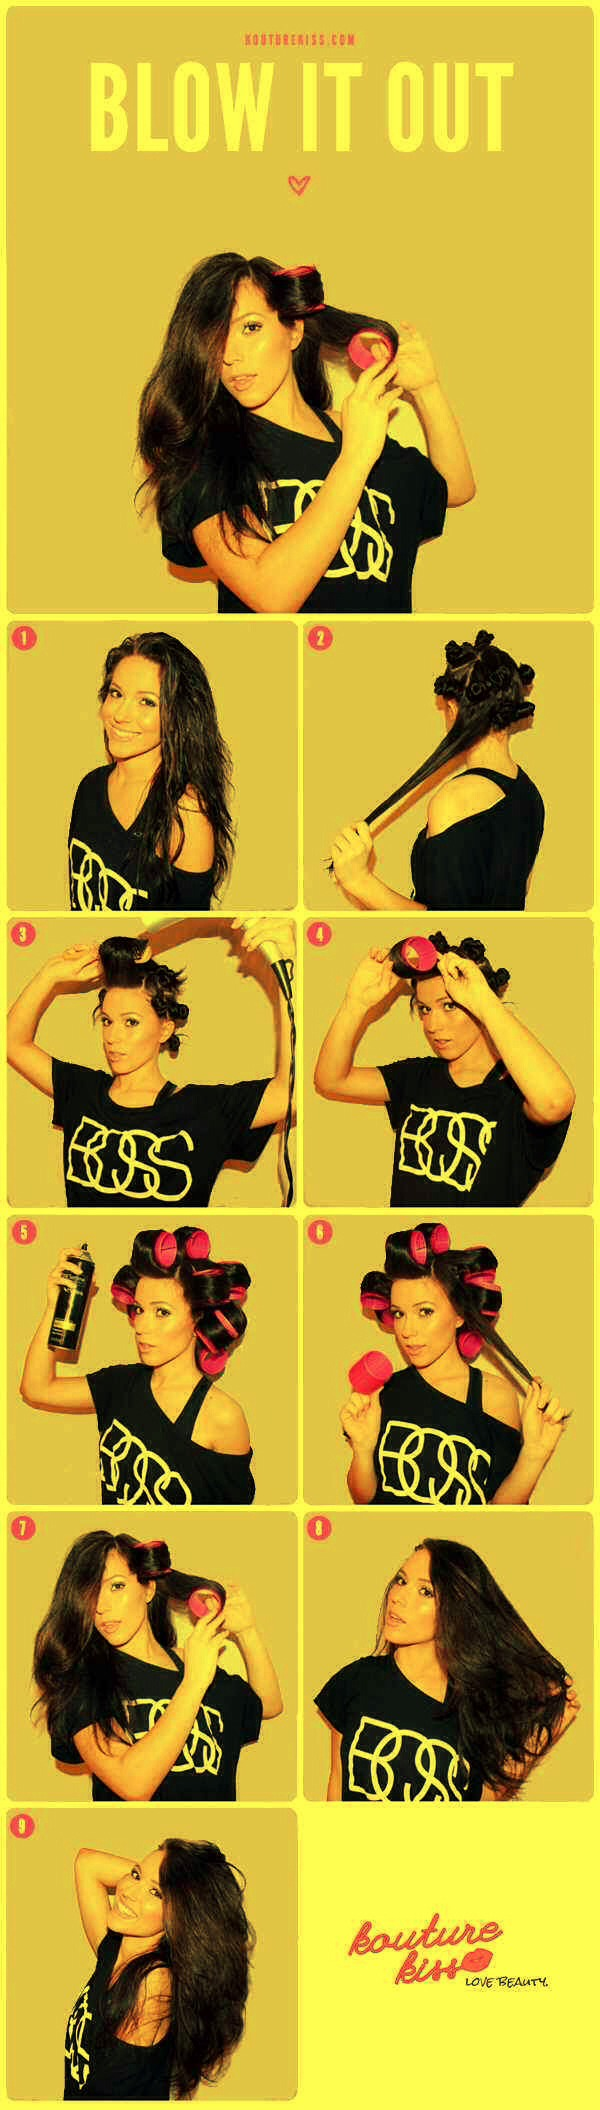 25. Self-grip velcro rollers give you the voluminous look of a round brush blowout without all the work.